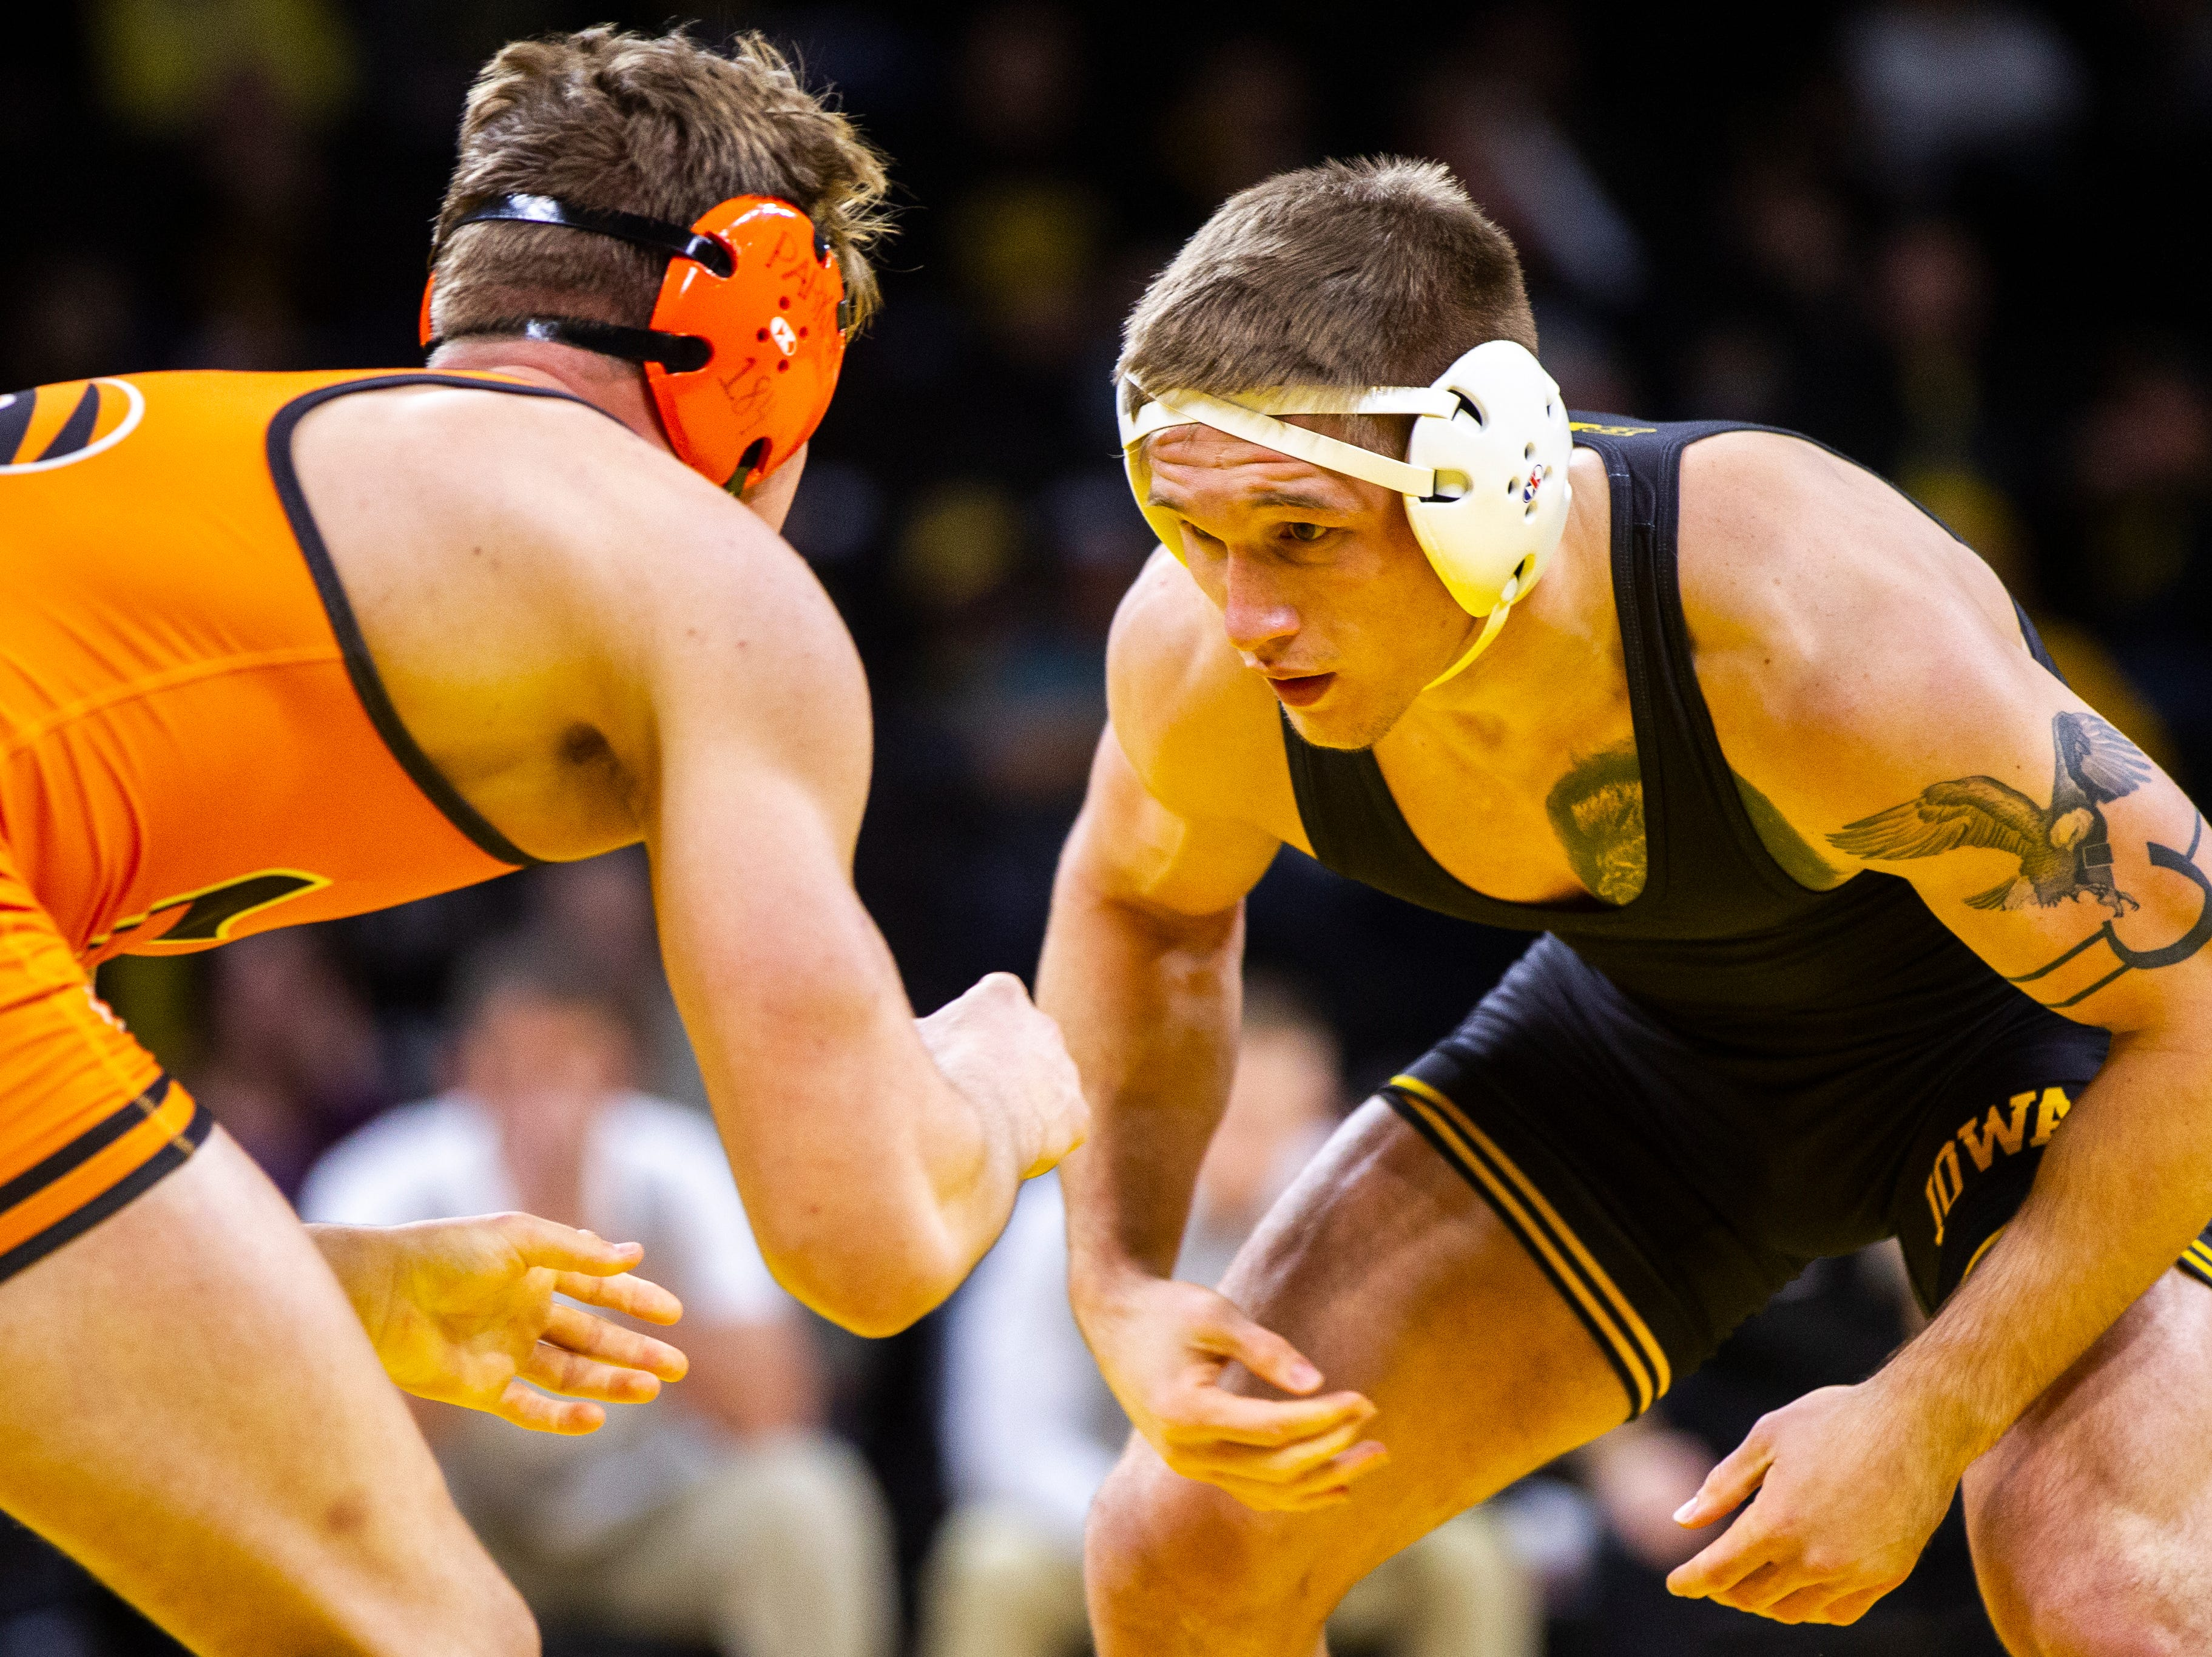 Iowa's Cash Wilcke (right) wrestles Princeton's Kevin Parker at 184 during an NCAA wrestle dual on Friday, Nov. 16, 2018, at Carver-Hawkeye Arena in Iowa City.